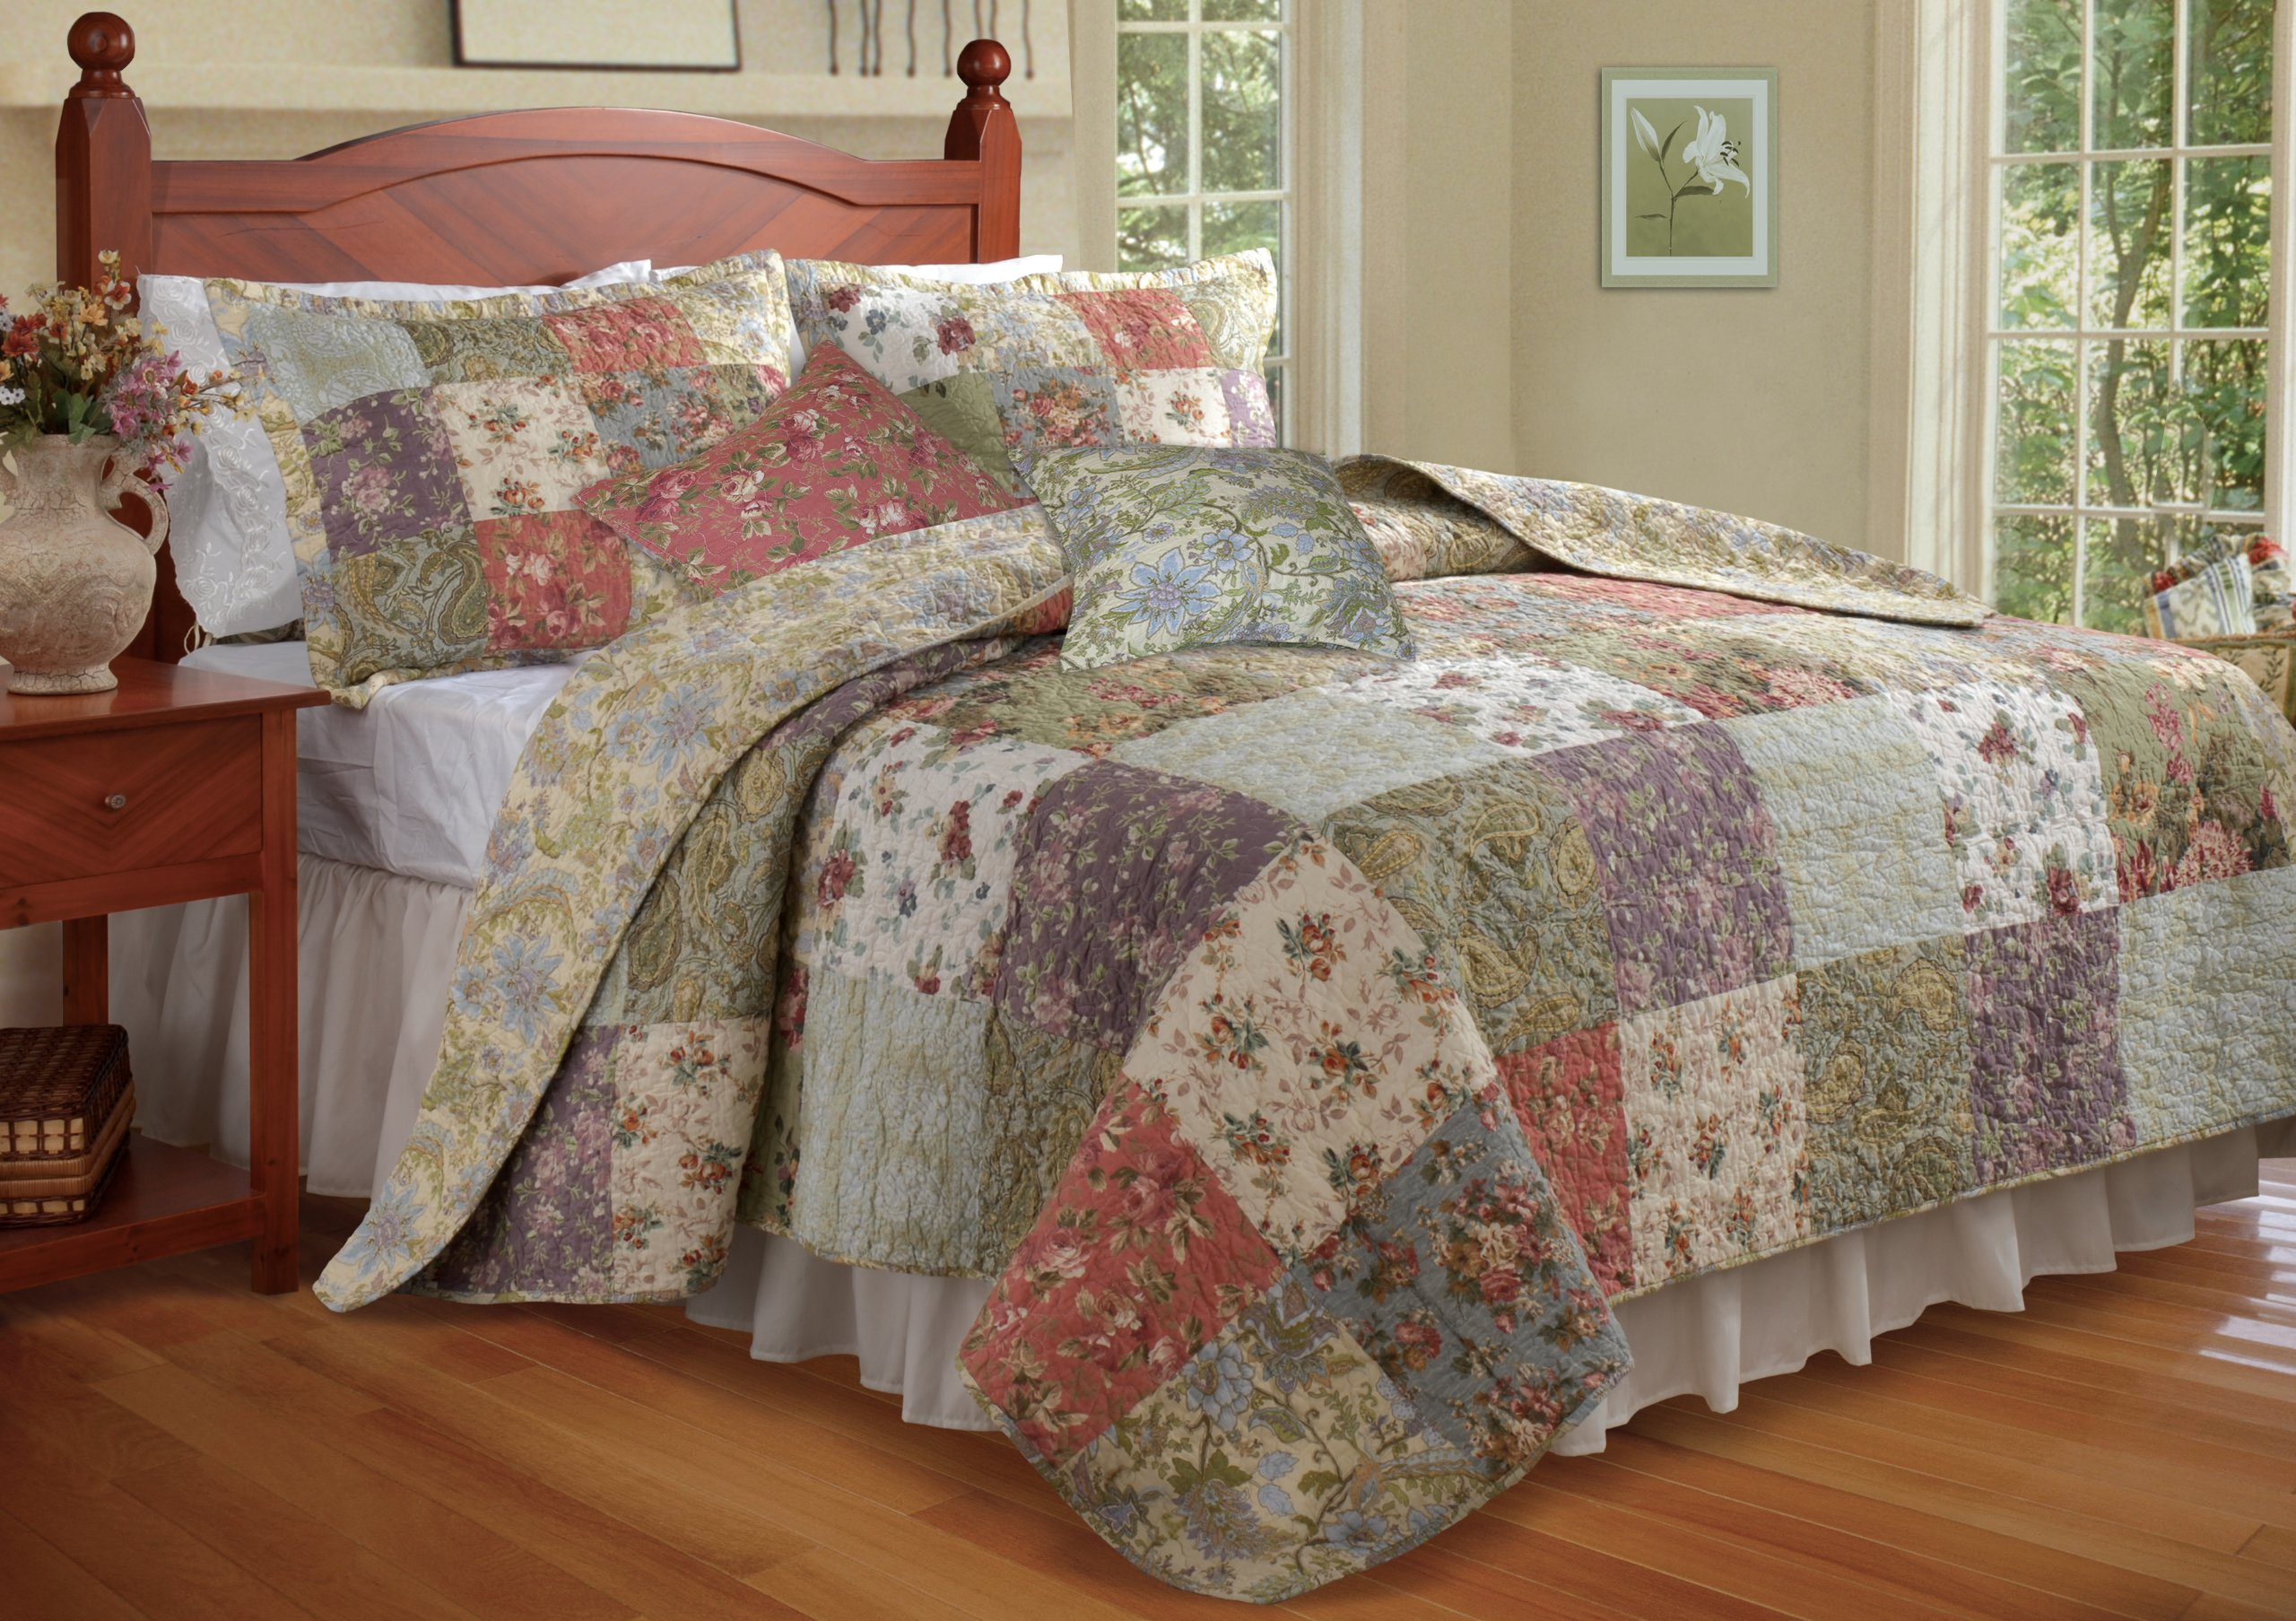 Greenland Home Blooming Prairie King Quilt Bonus Set by Greenland Home